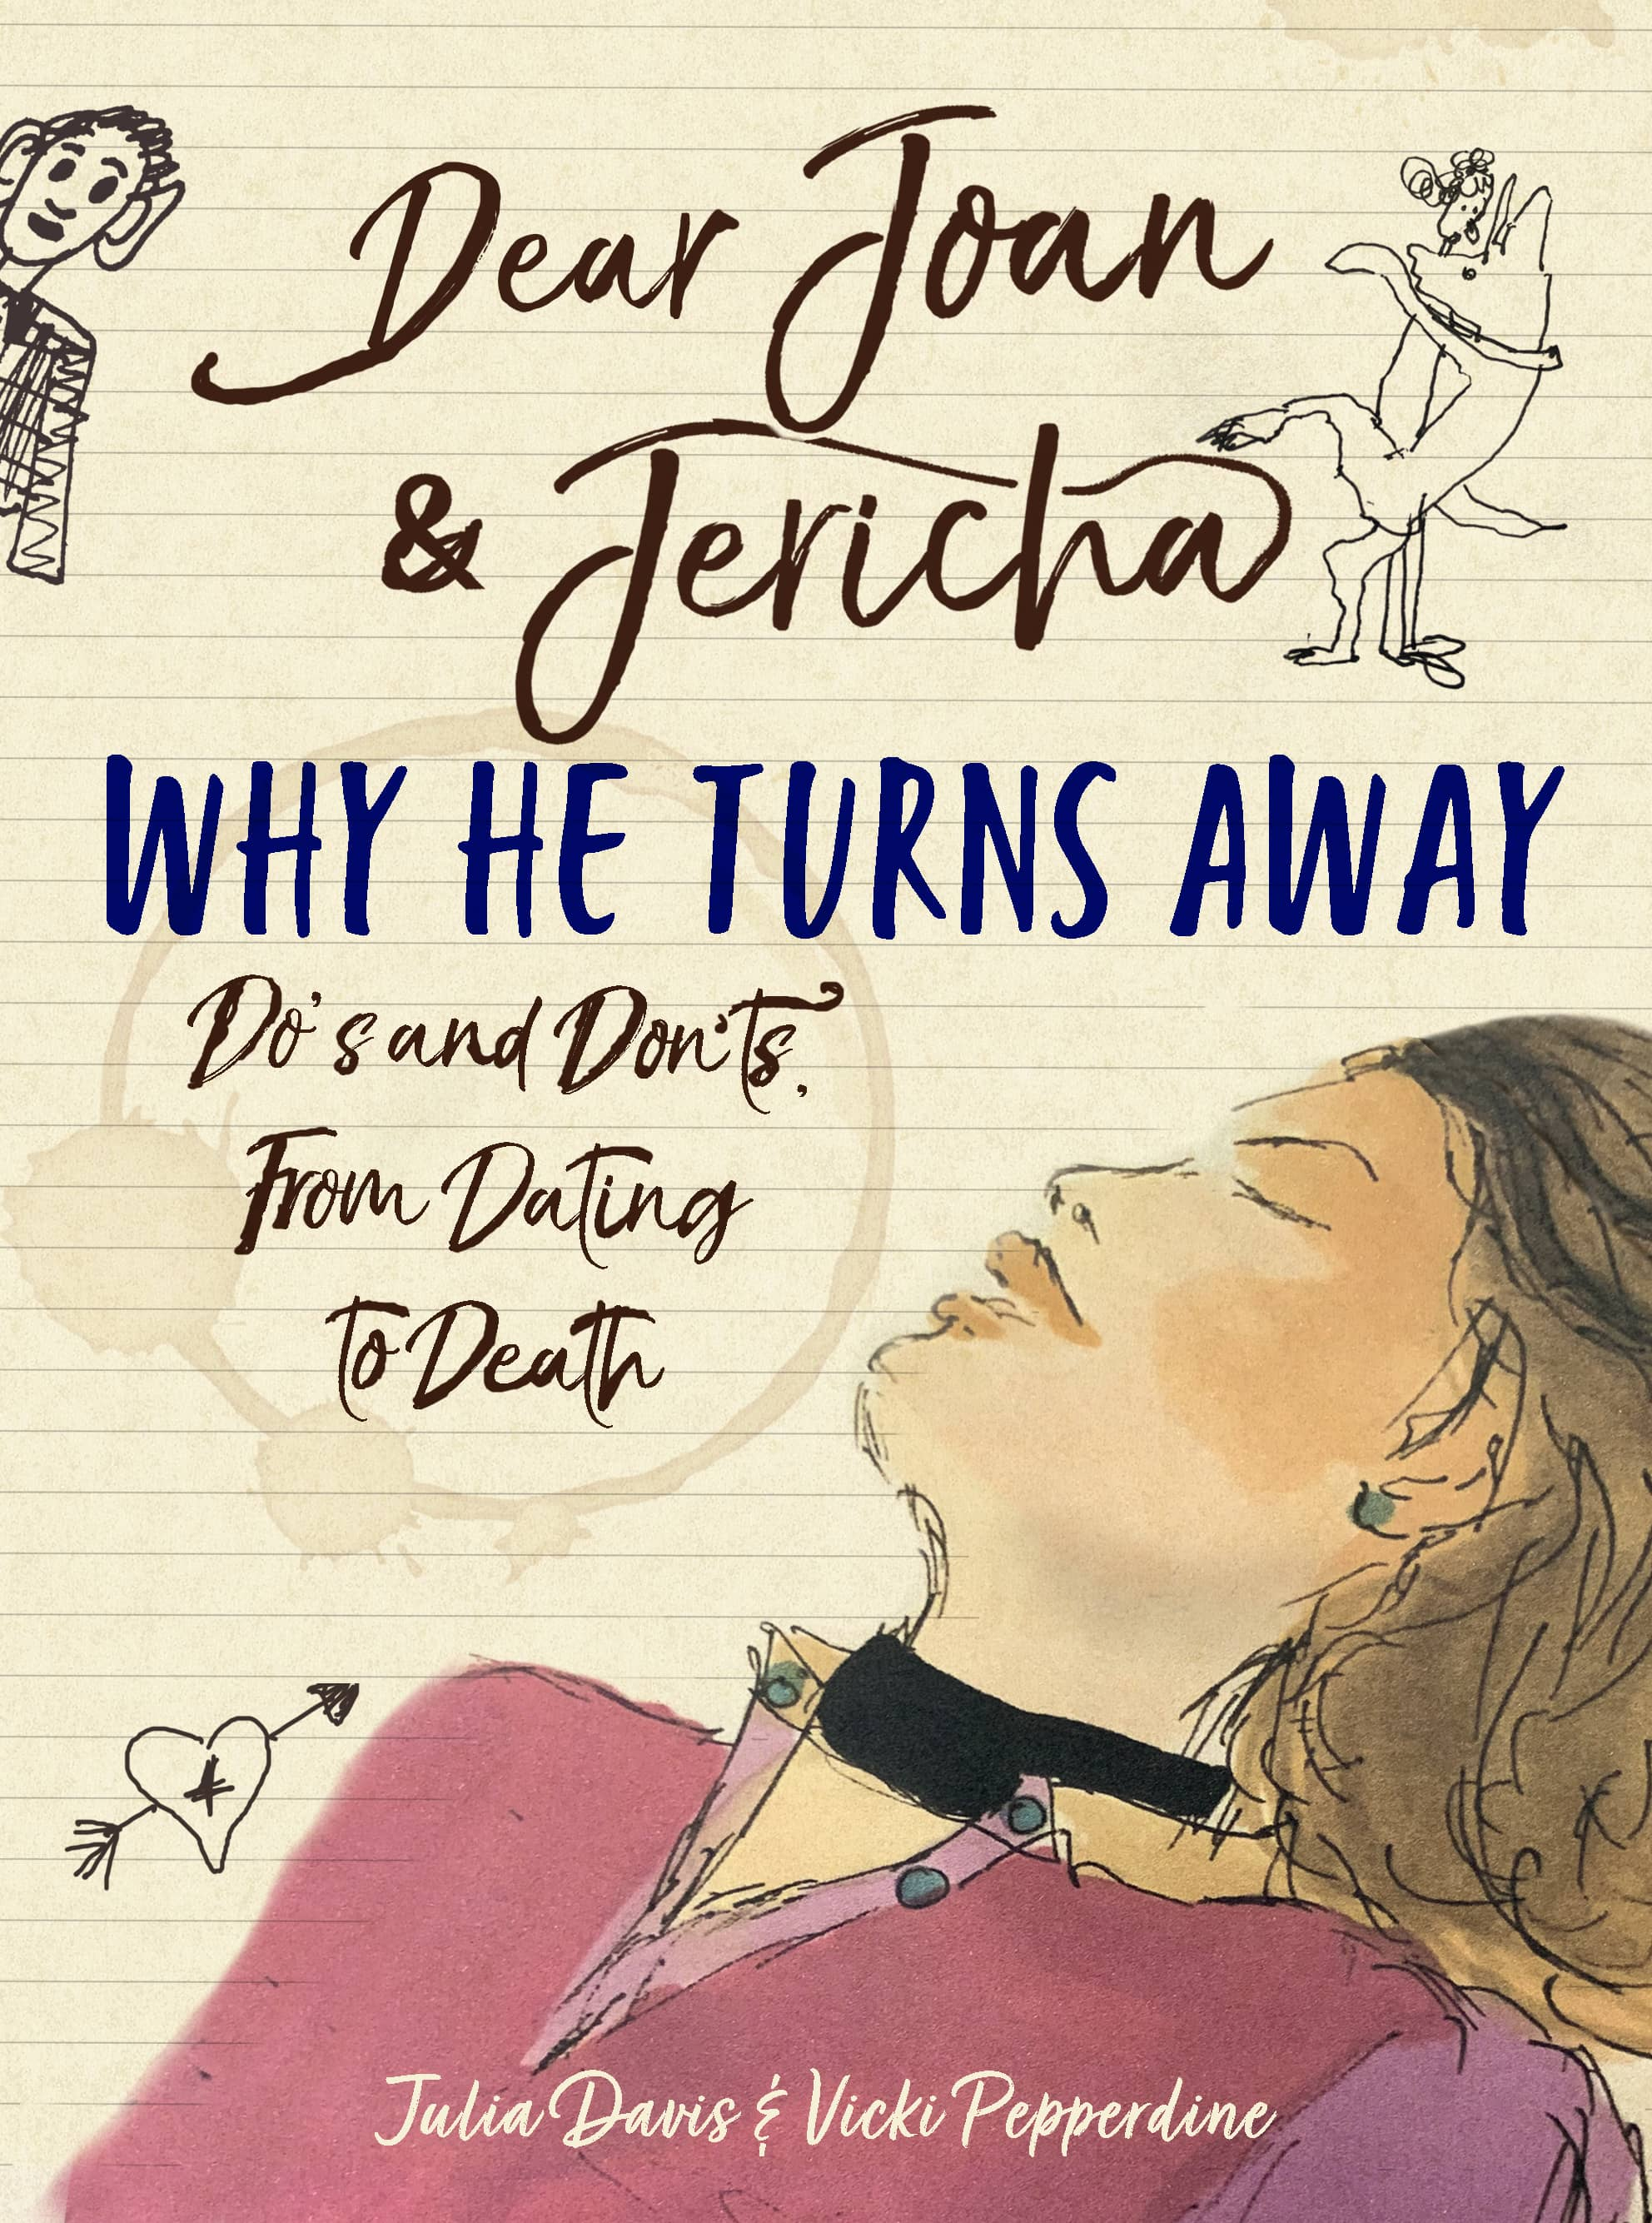 Dear Joan and Jericha - Why He Turns Away: Do's and Don'ts from Dating to Death